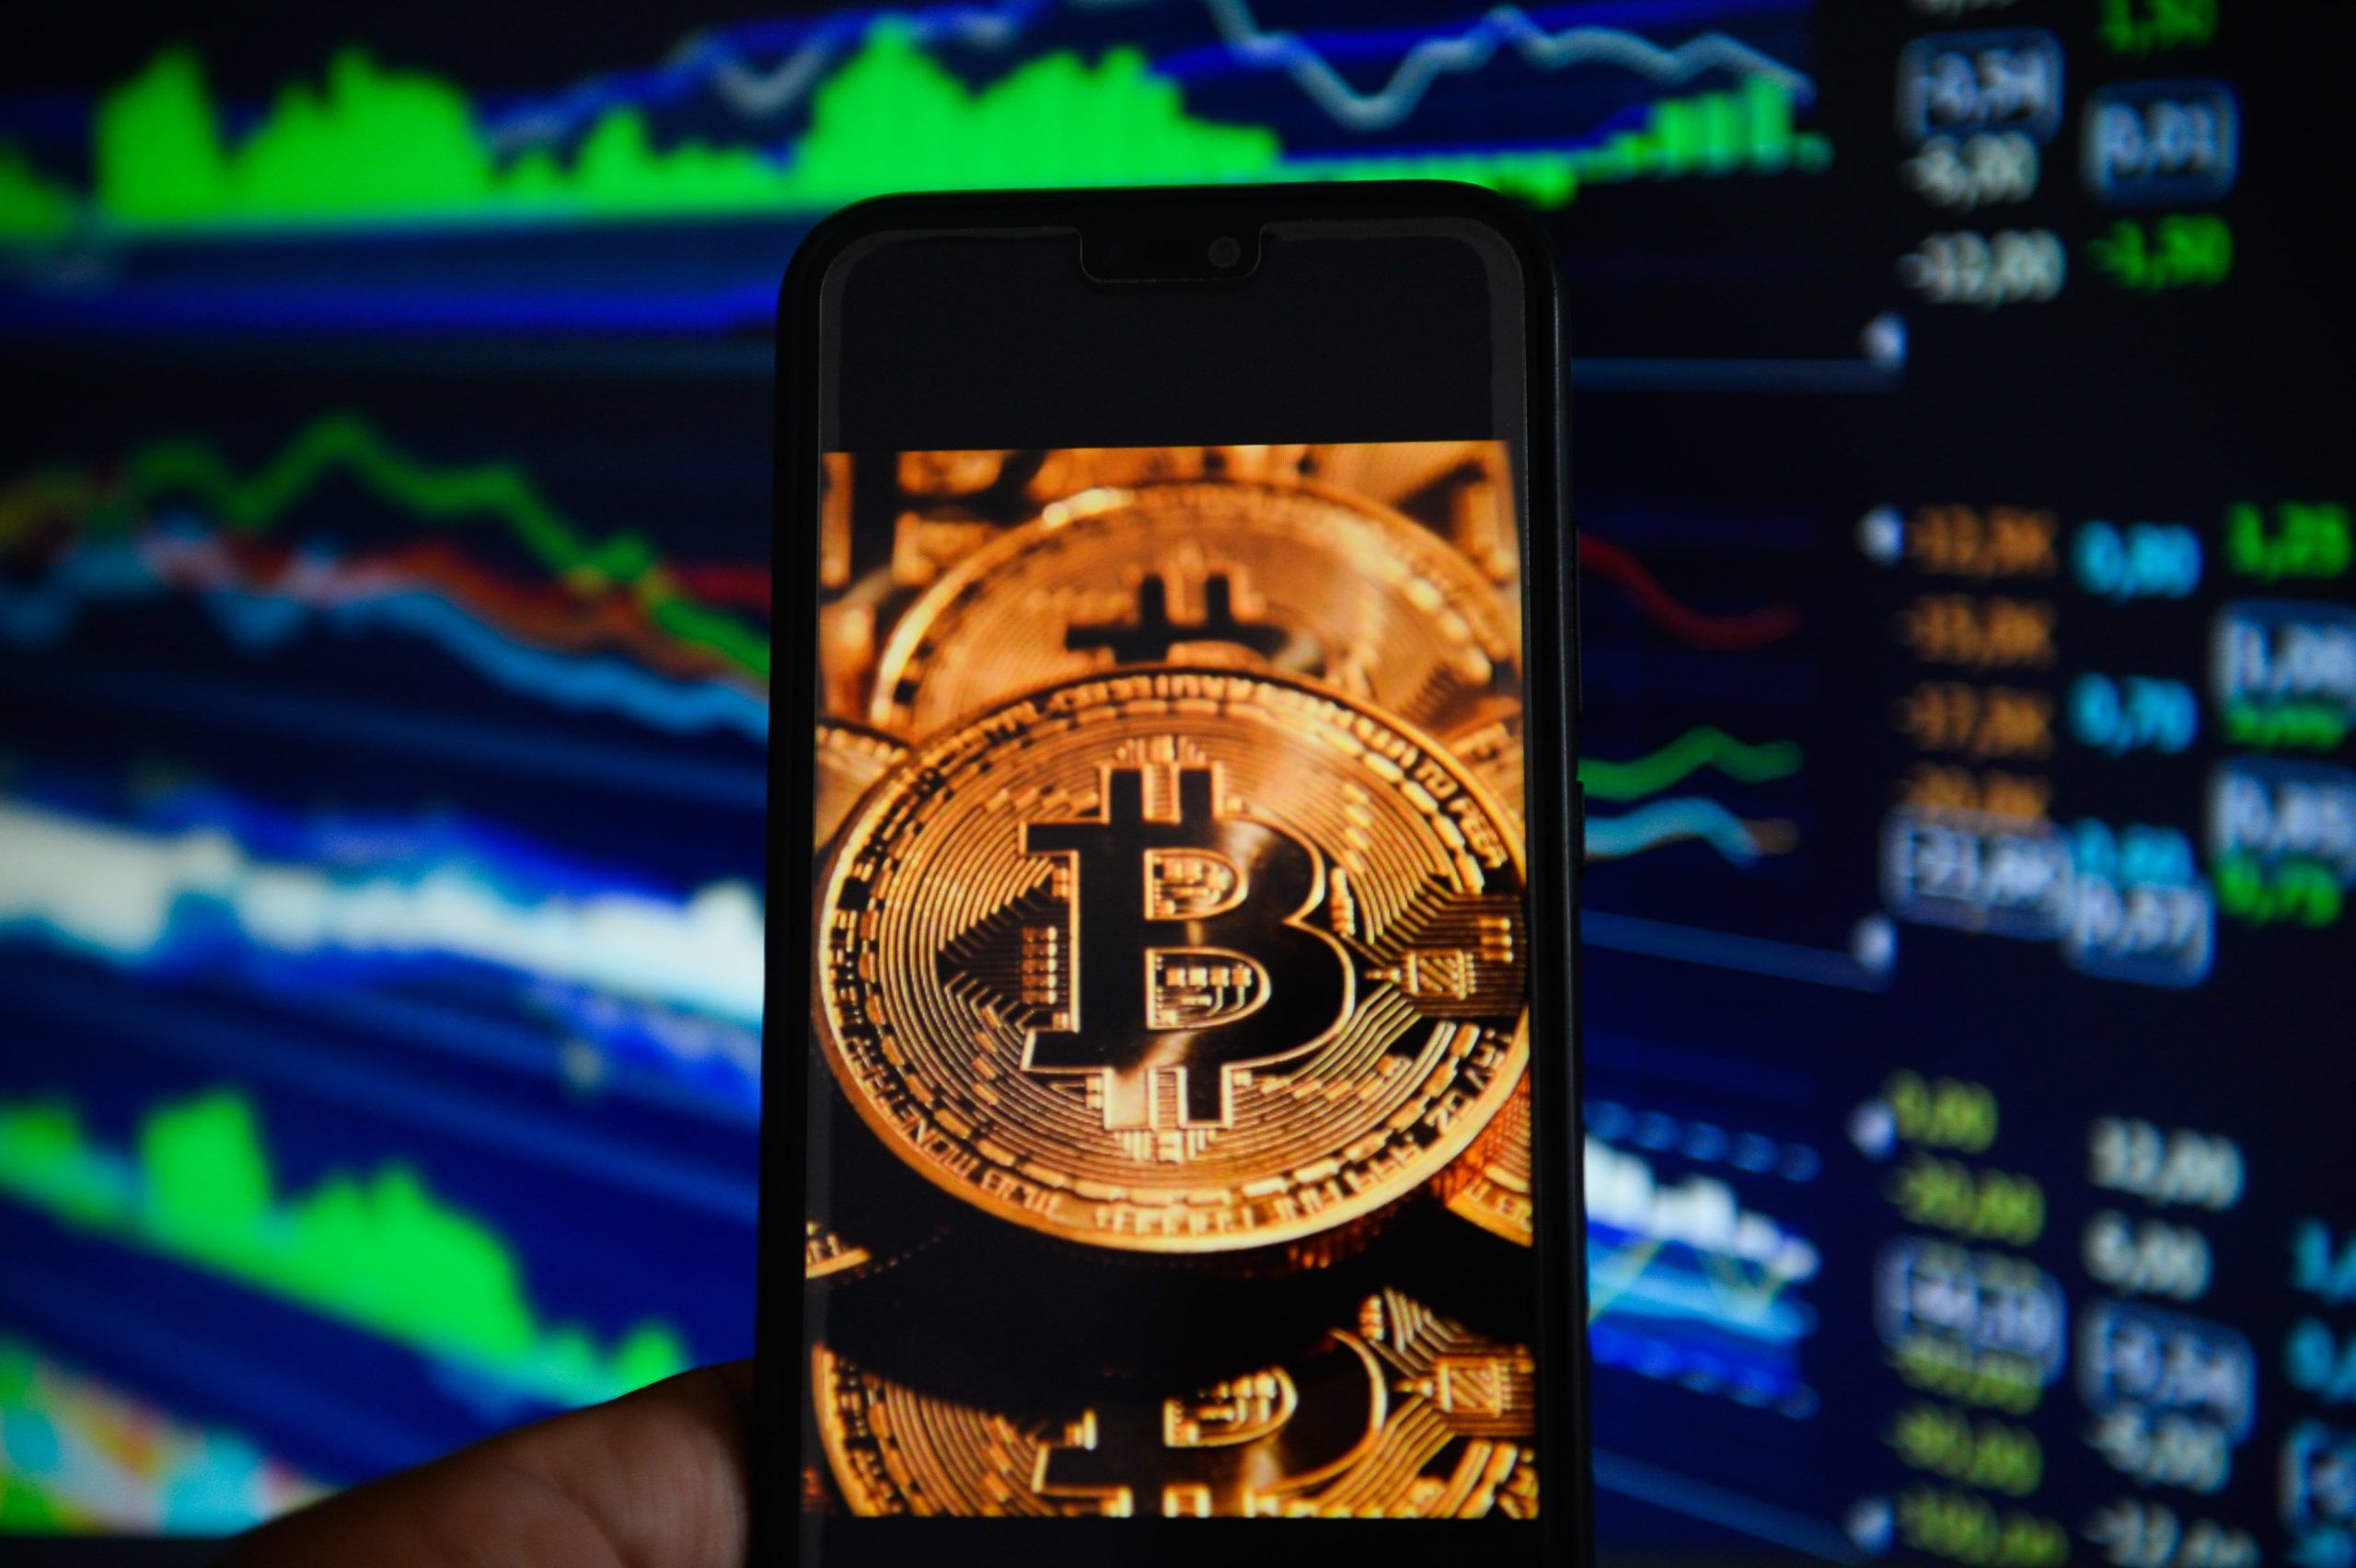 105417331 1535340484943gettyimages 1022238972 scaled - Bitcoin And Crypto Must Overcome Major Trust Issues To Be Completely Successful